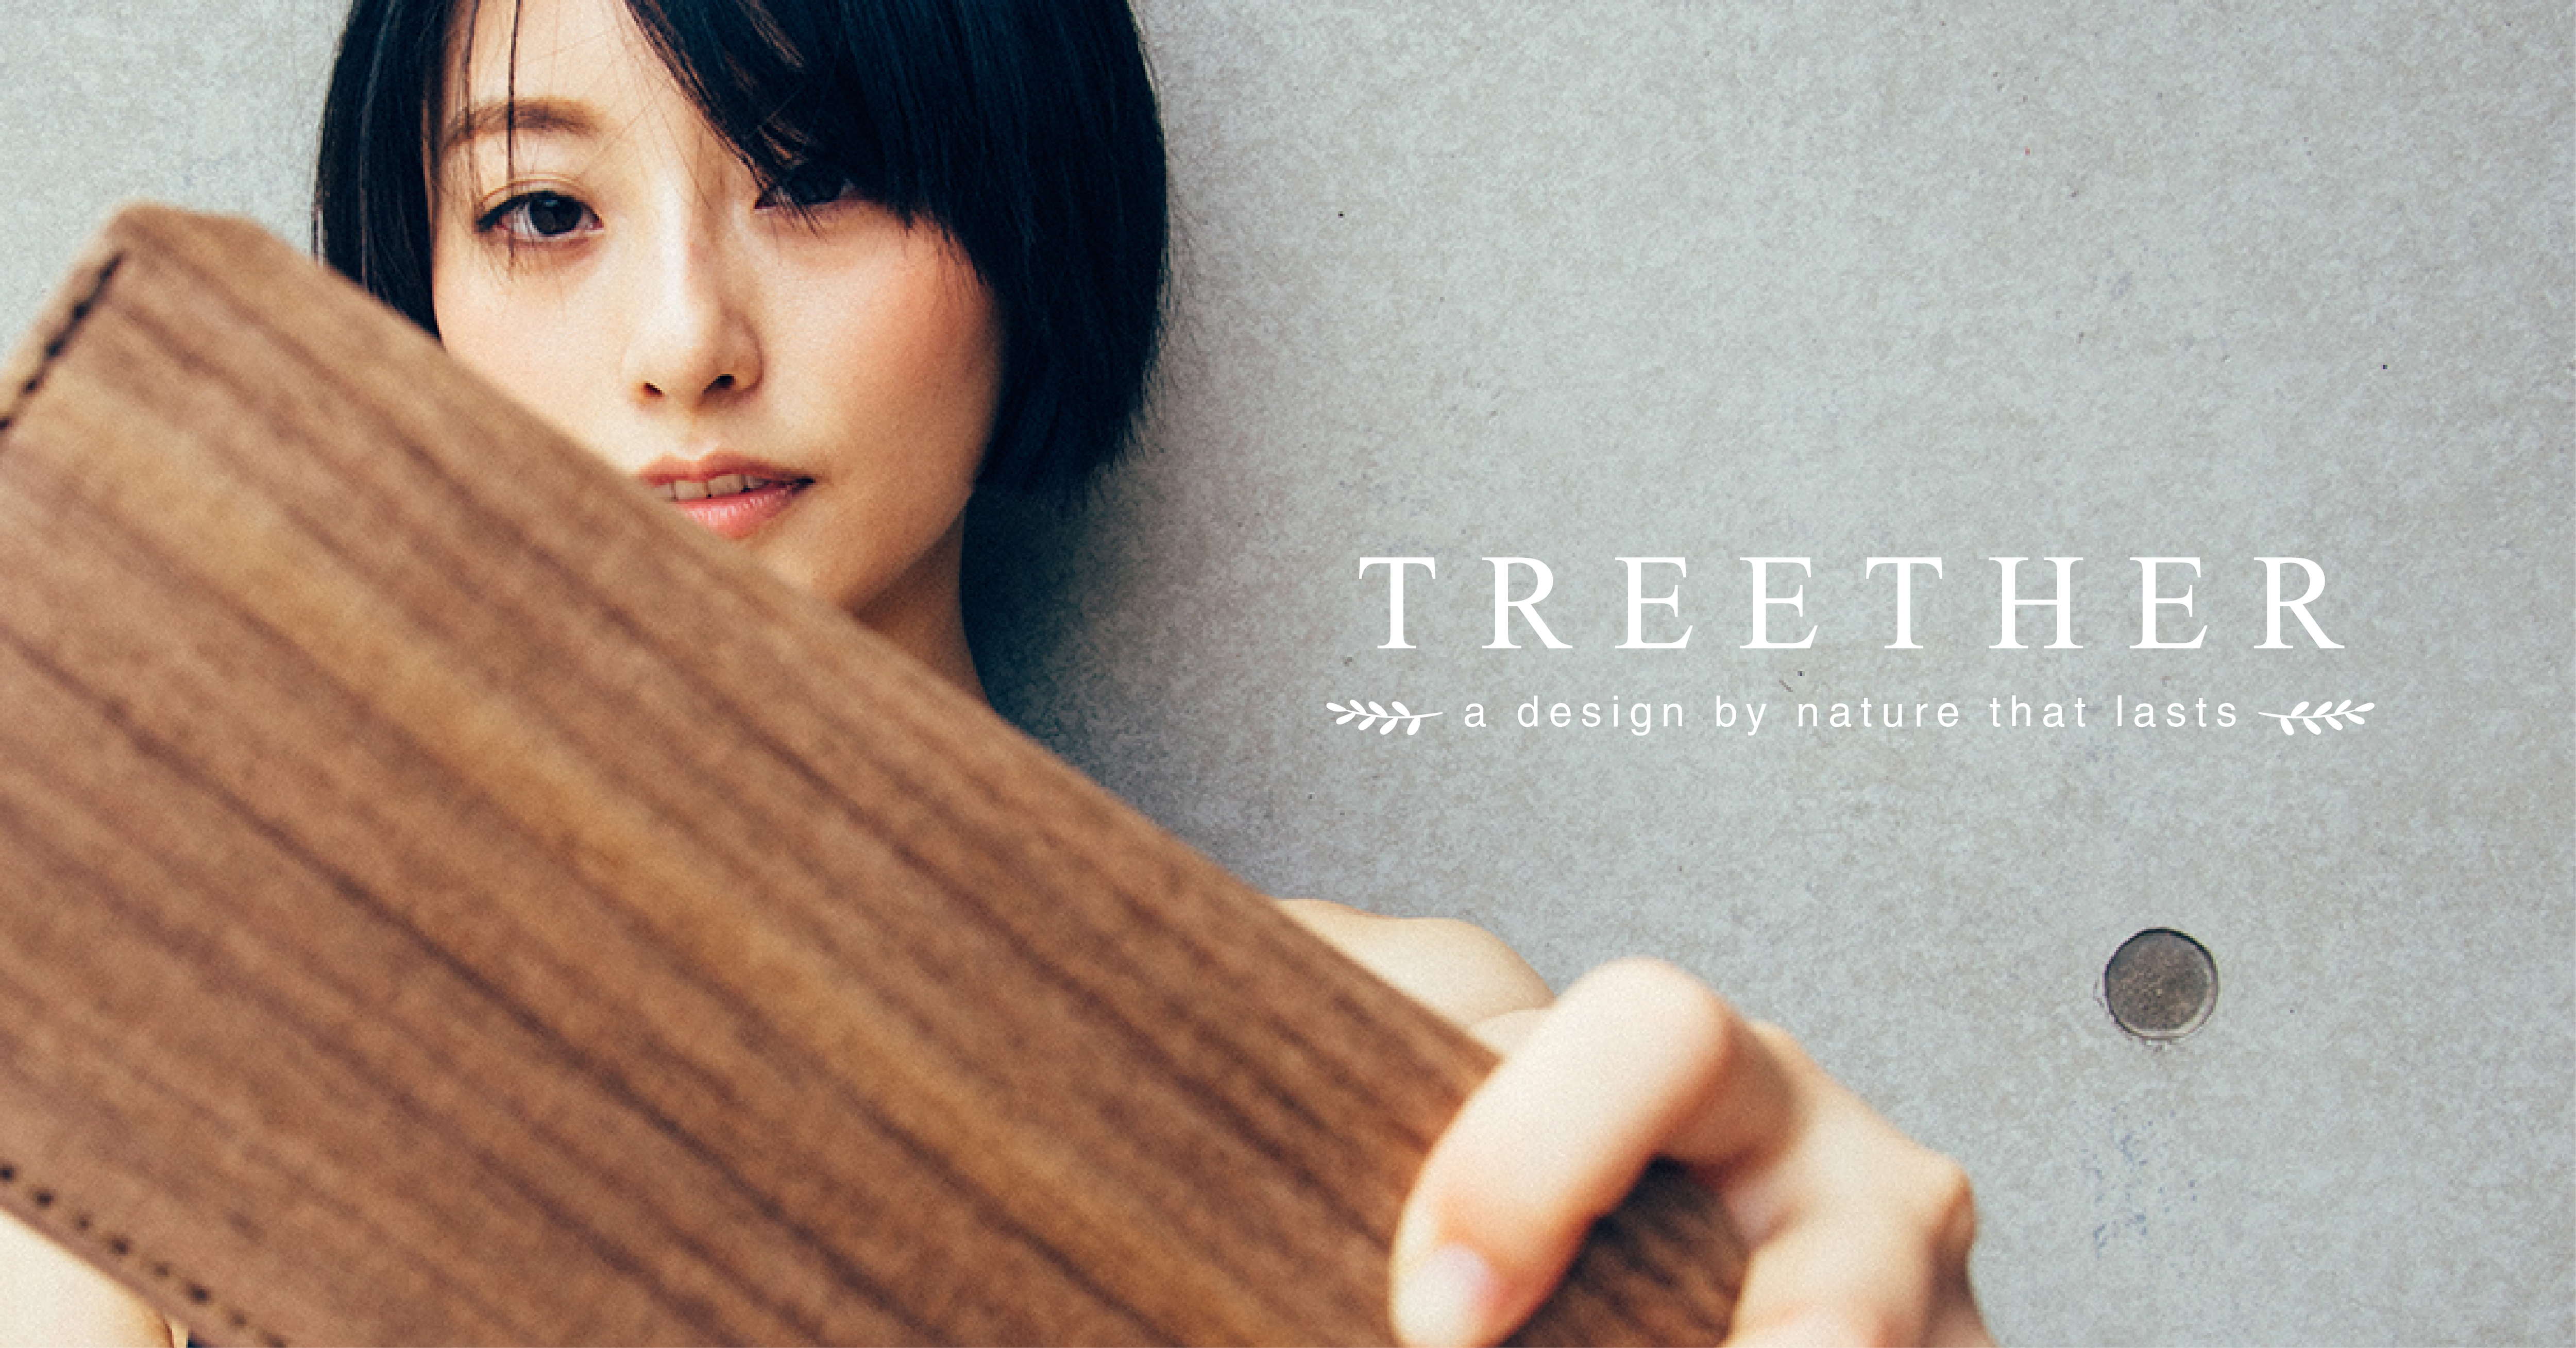 PARSEC design|Treether - Wallets Crafted With Beautiful Wood